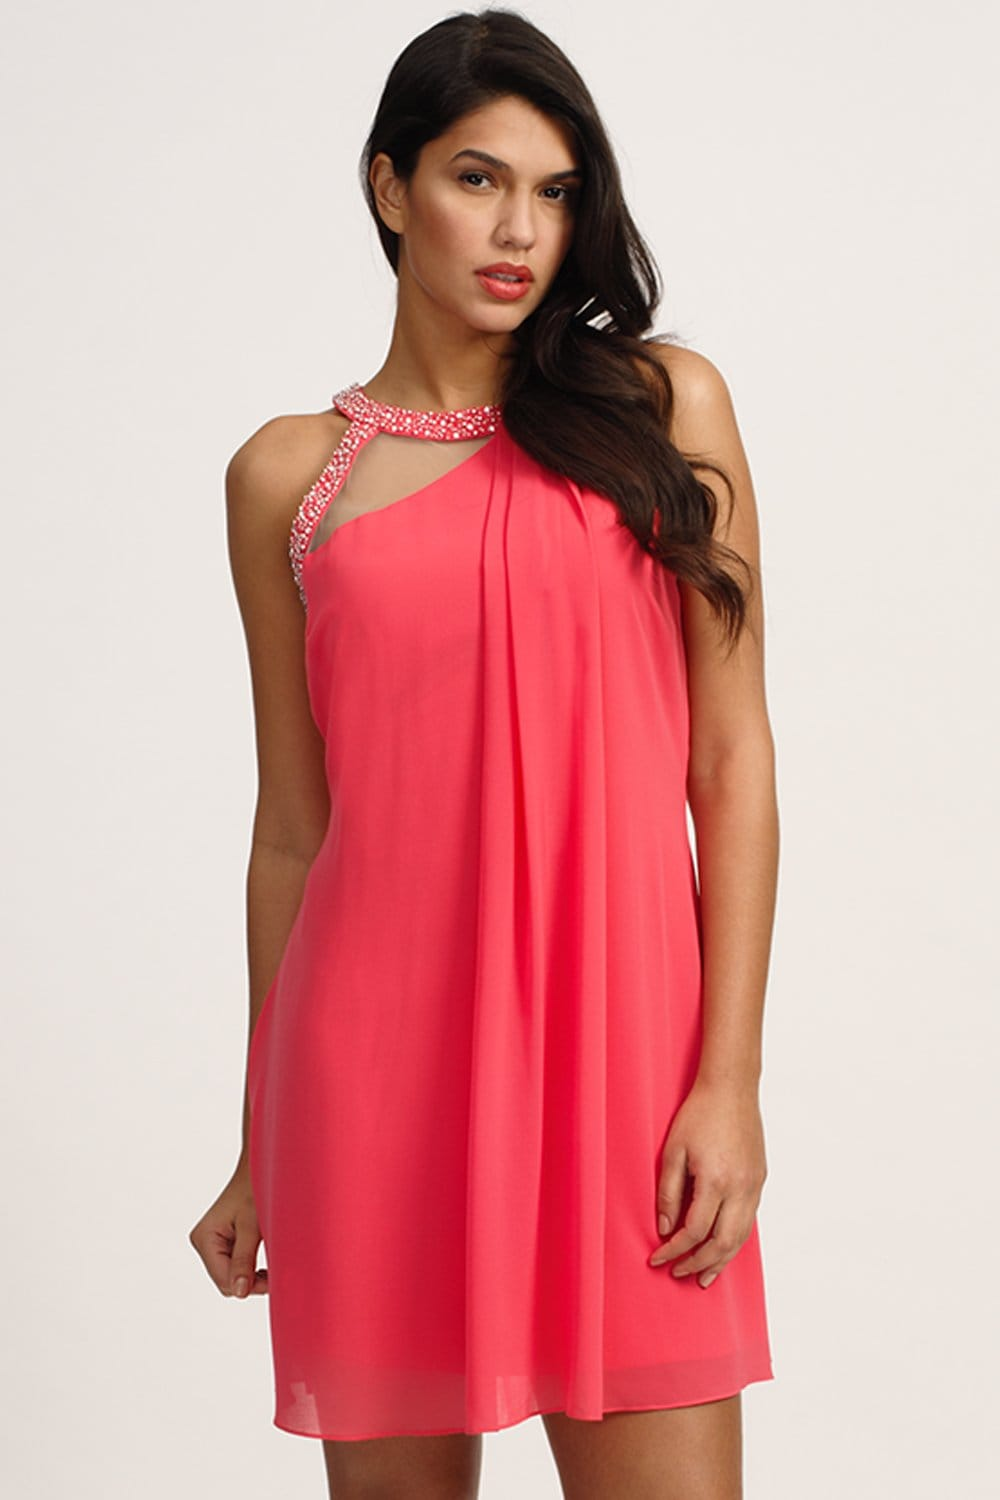 Coral Embellished Keyhole Shift Dress - from Little Mistress UK